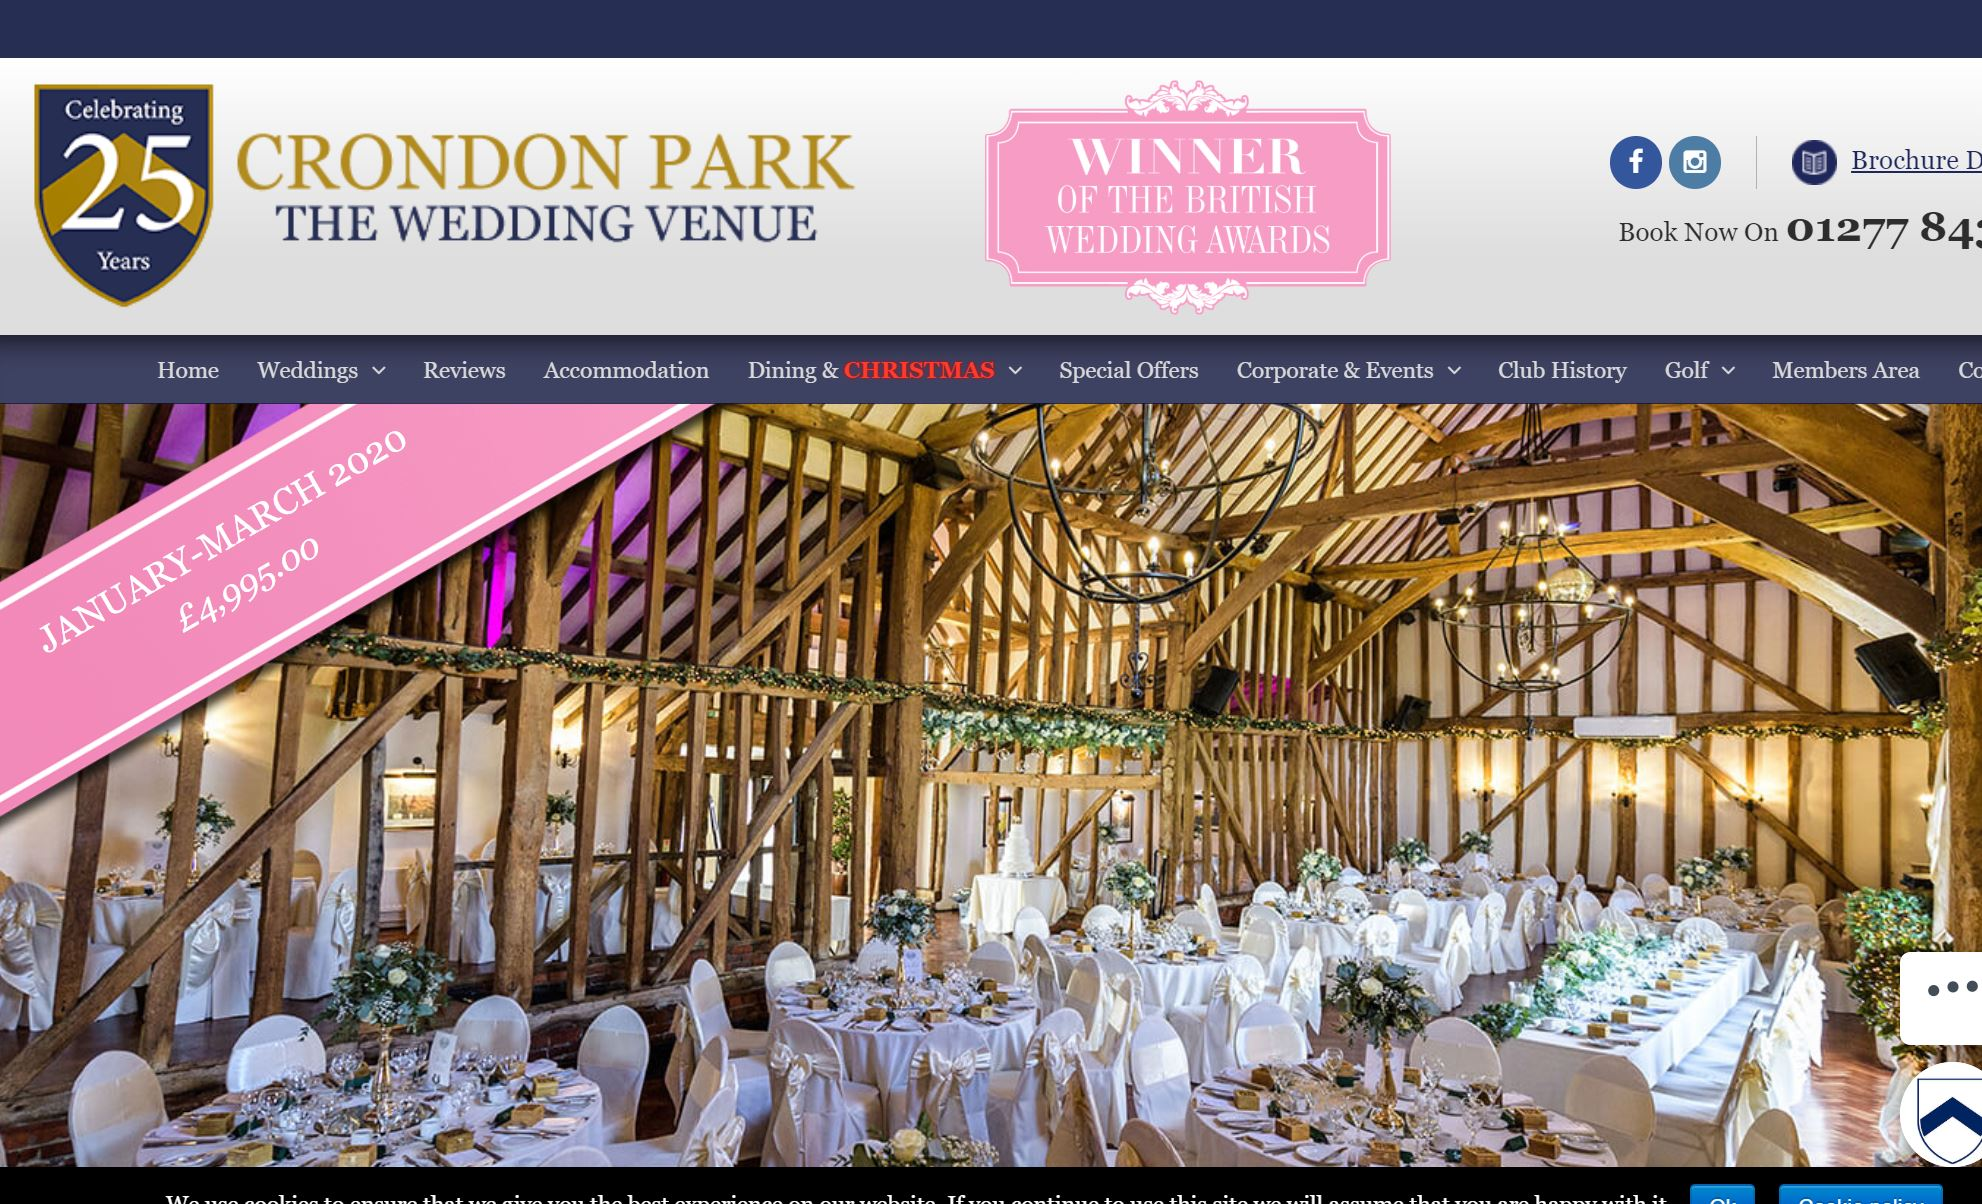 Crondon Park - Beautiful wedding venue in the heart of Essex, staff are welcoming, friendly, organised and professional with an eye for detail. The venue features its own luxurious Bridal Suite, situated in its own detached cottage, in a totally secluded location.